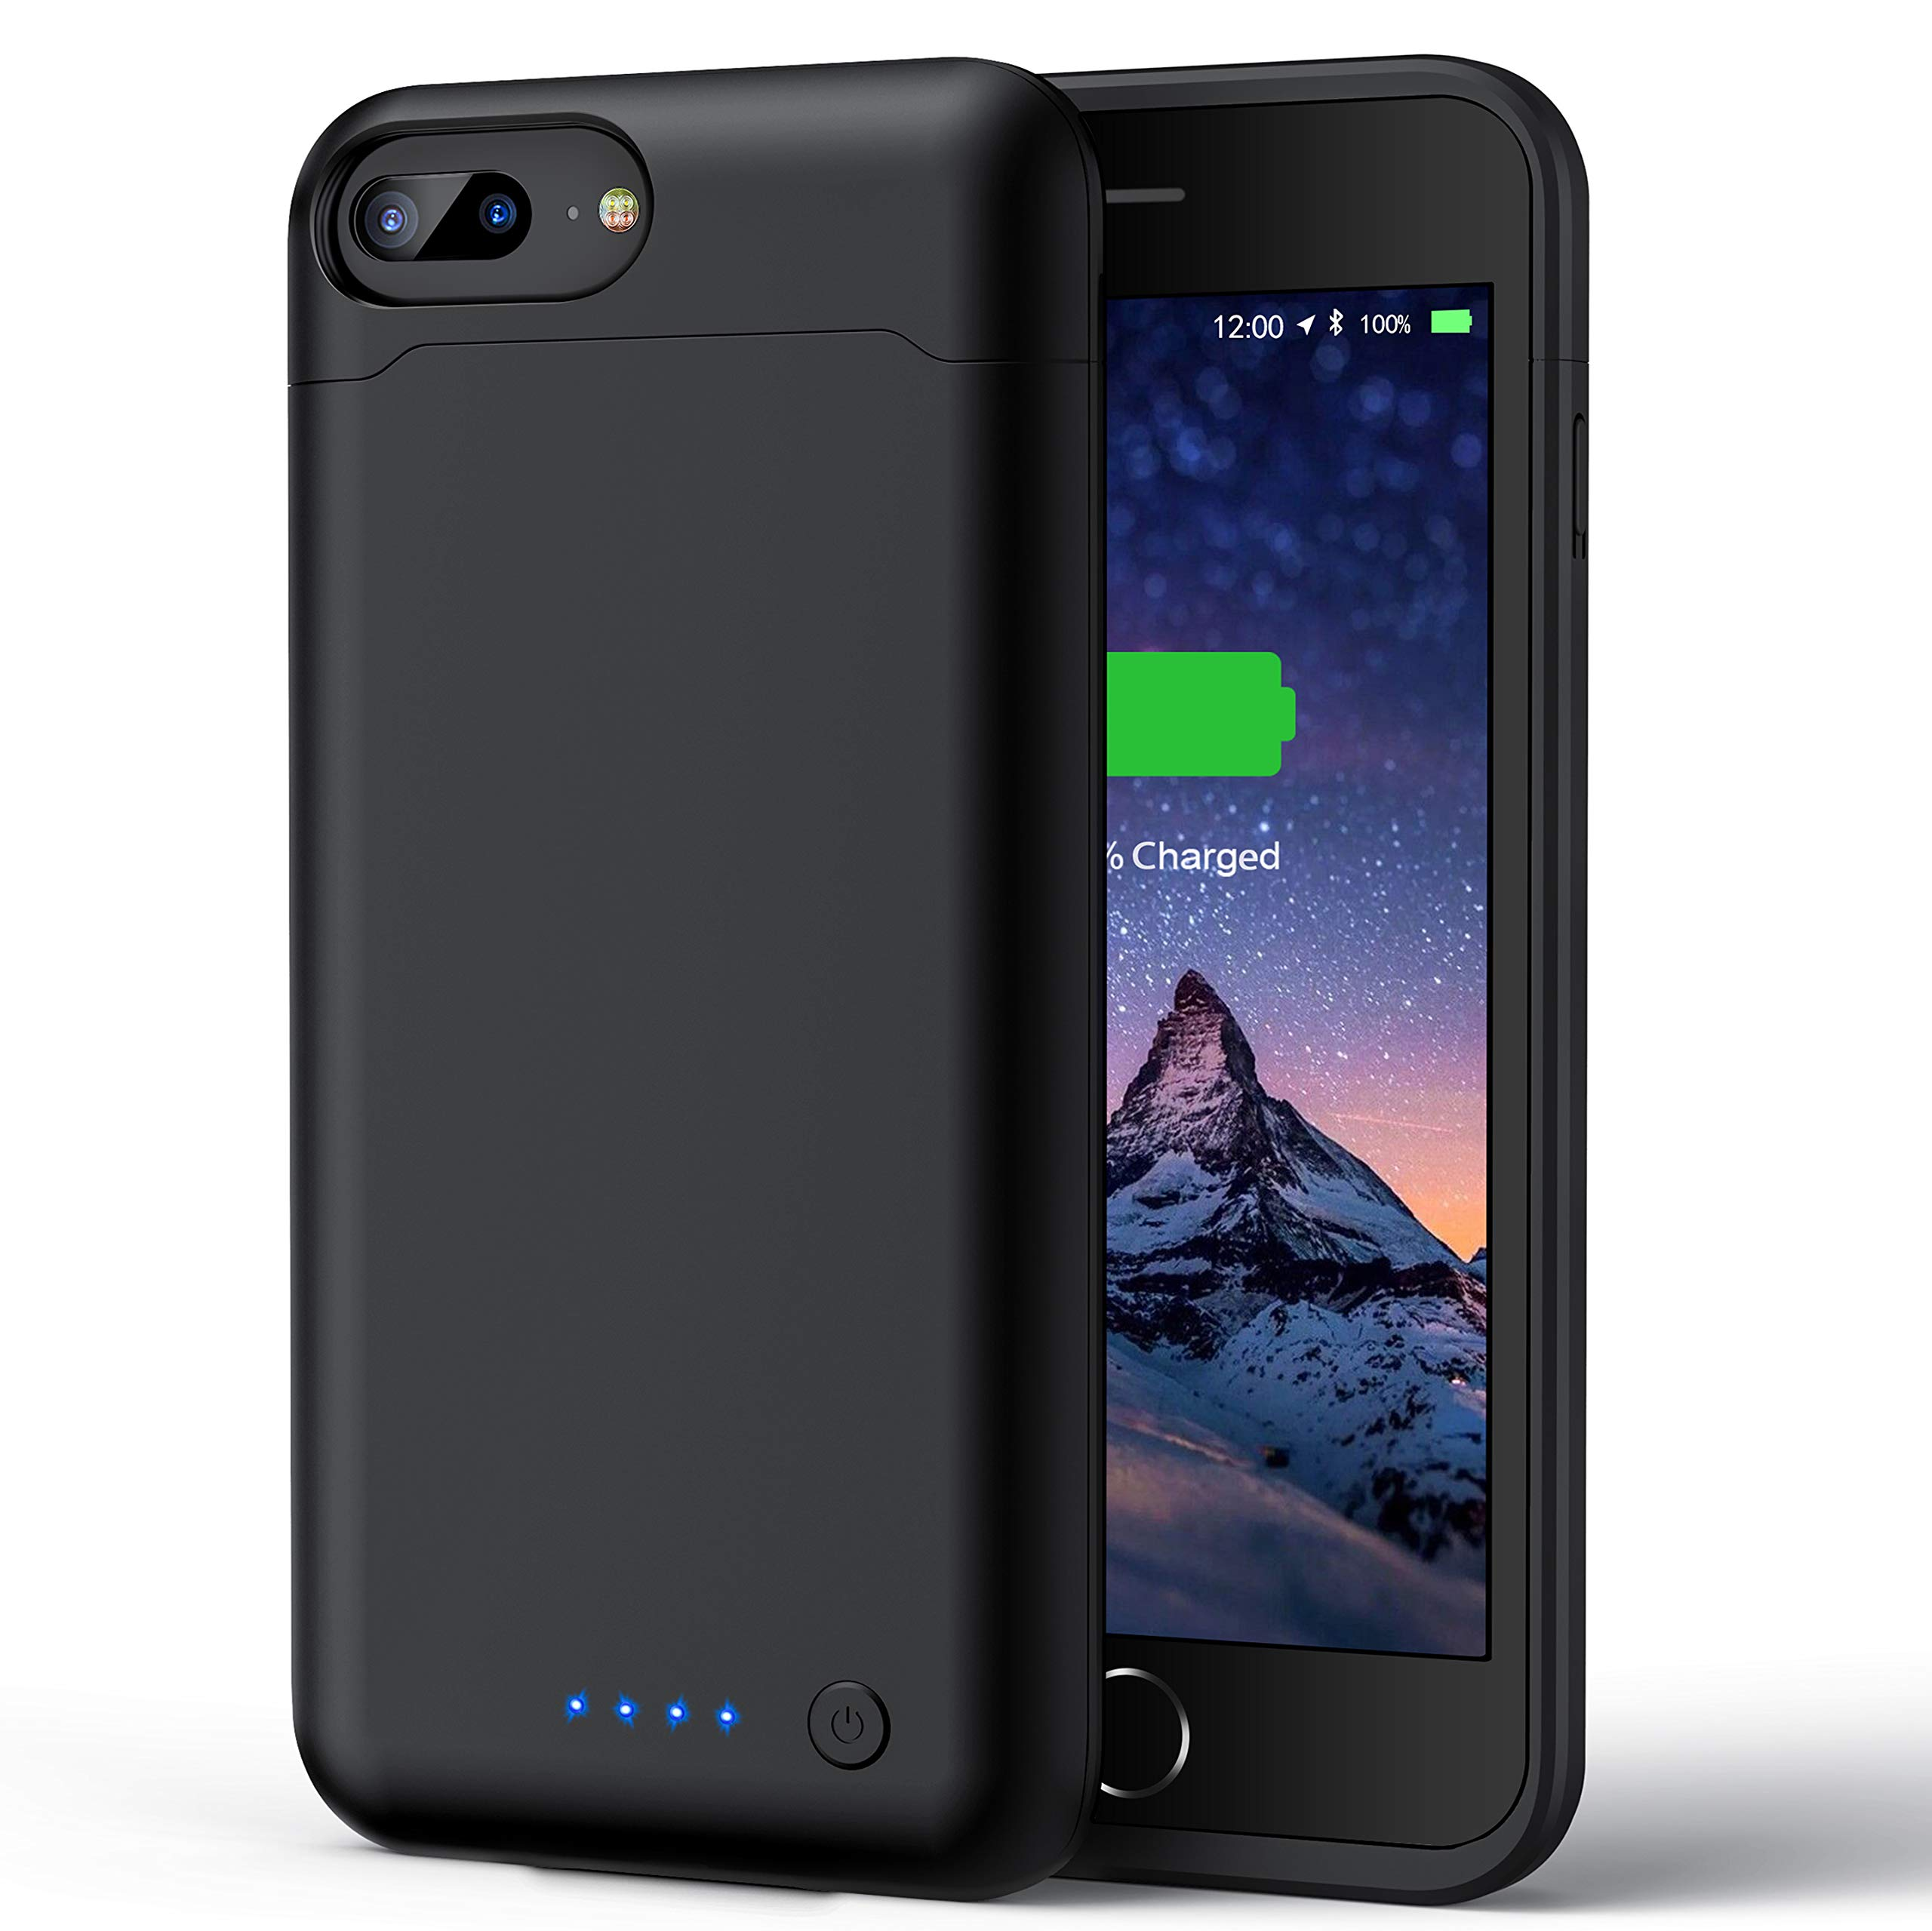 Battery Case for iPhone 7 Plus / 8 Plus, [ Upgraded ] 8500mAh Rechargeable Portable Charging Case for iPhone 8 Puls / 7 Plus (5.5inch) Extended Protective Charger Case Battery Pack -Black